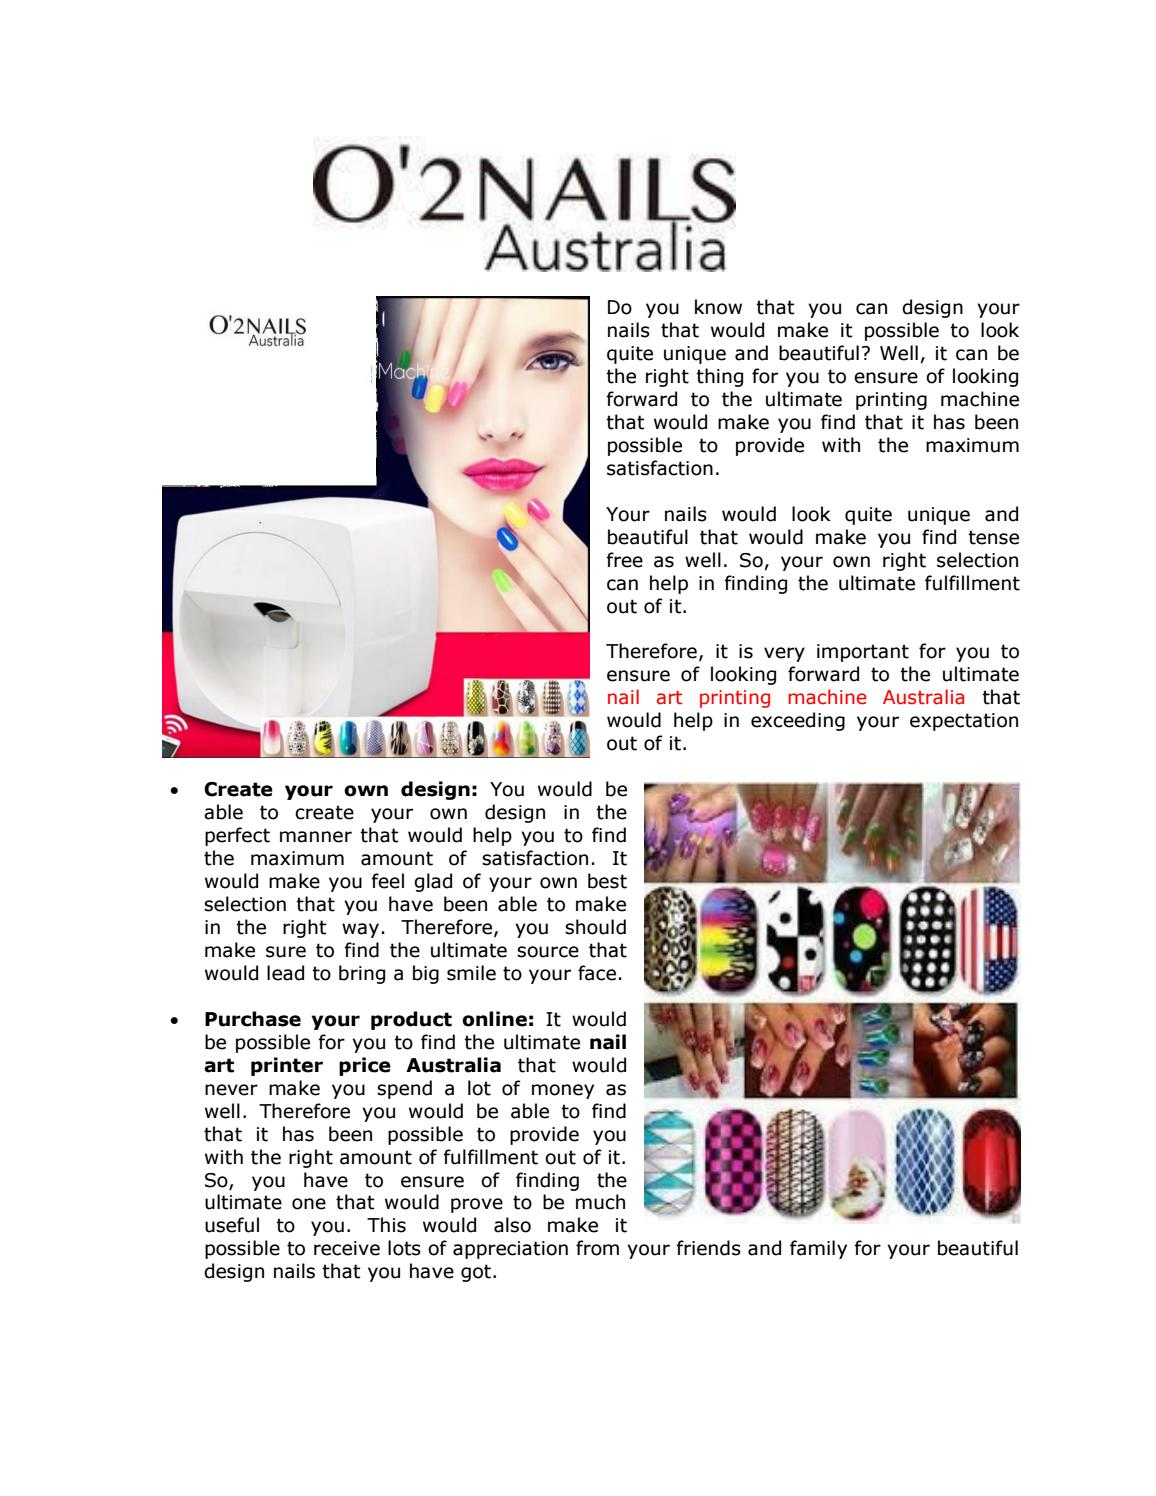 Take Good Steps To Ensure Of Finding The Perfect Nail Art Printing Machine Australia By O 2 Nails Issuu